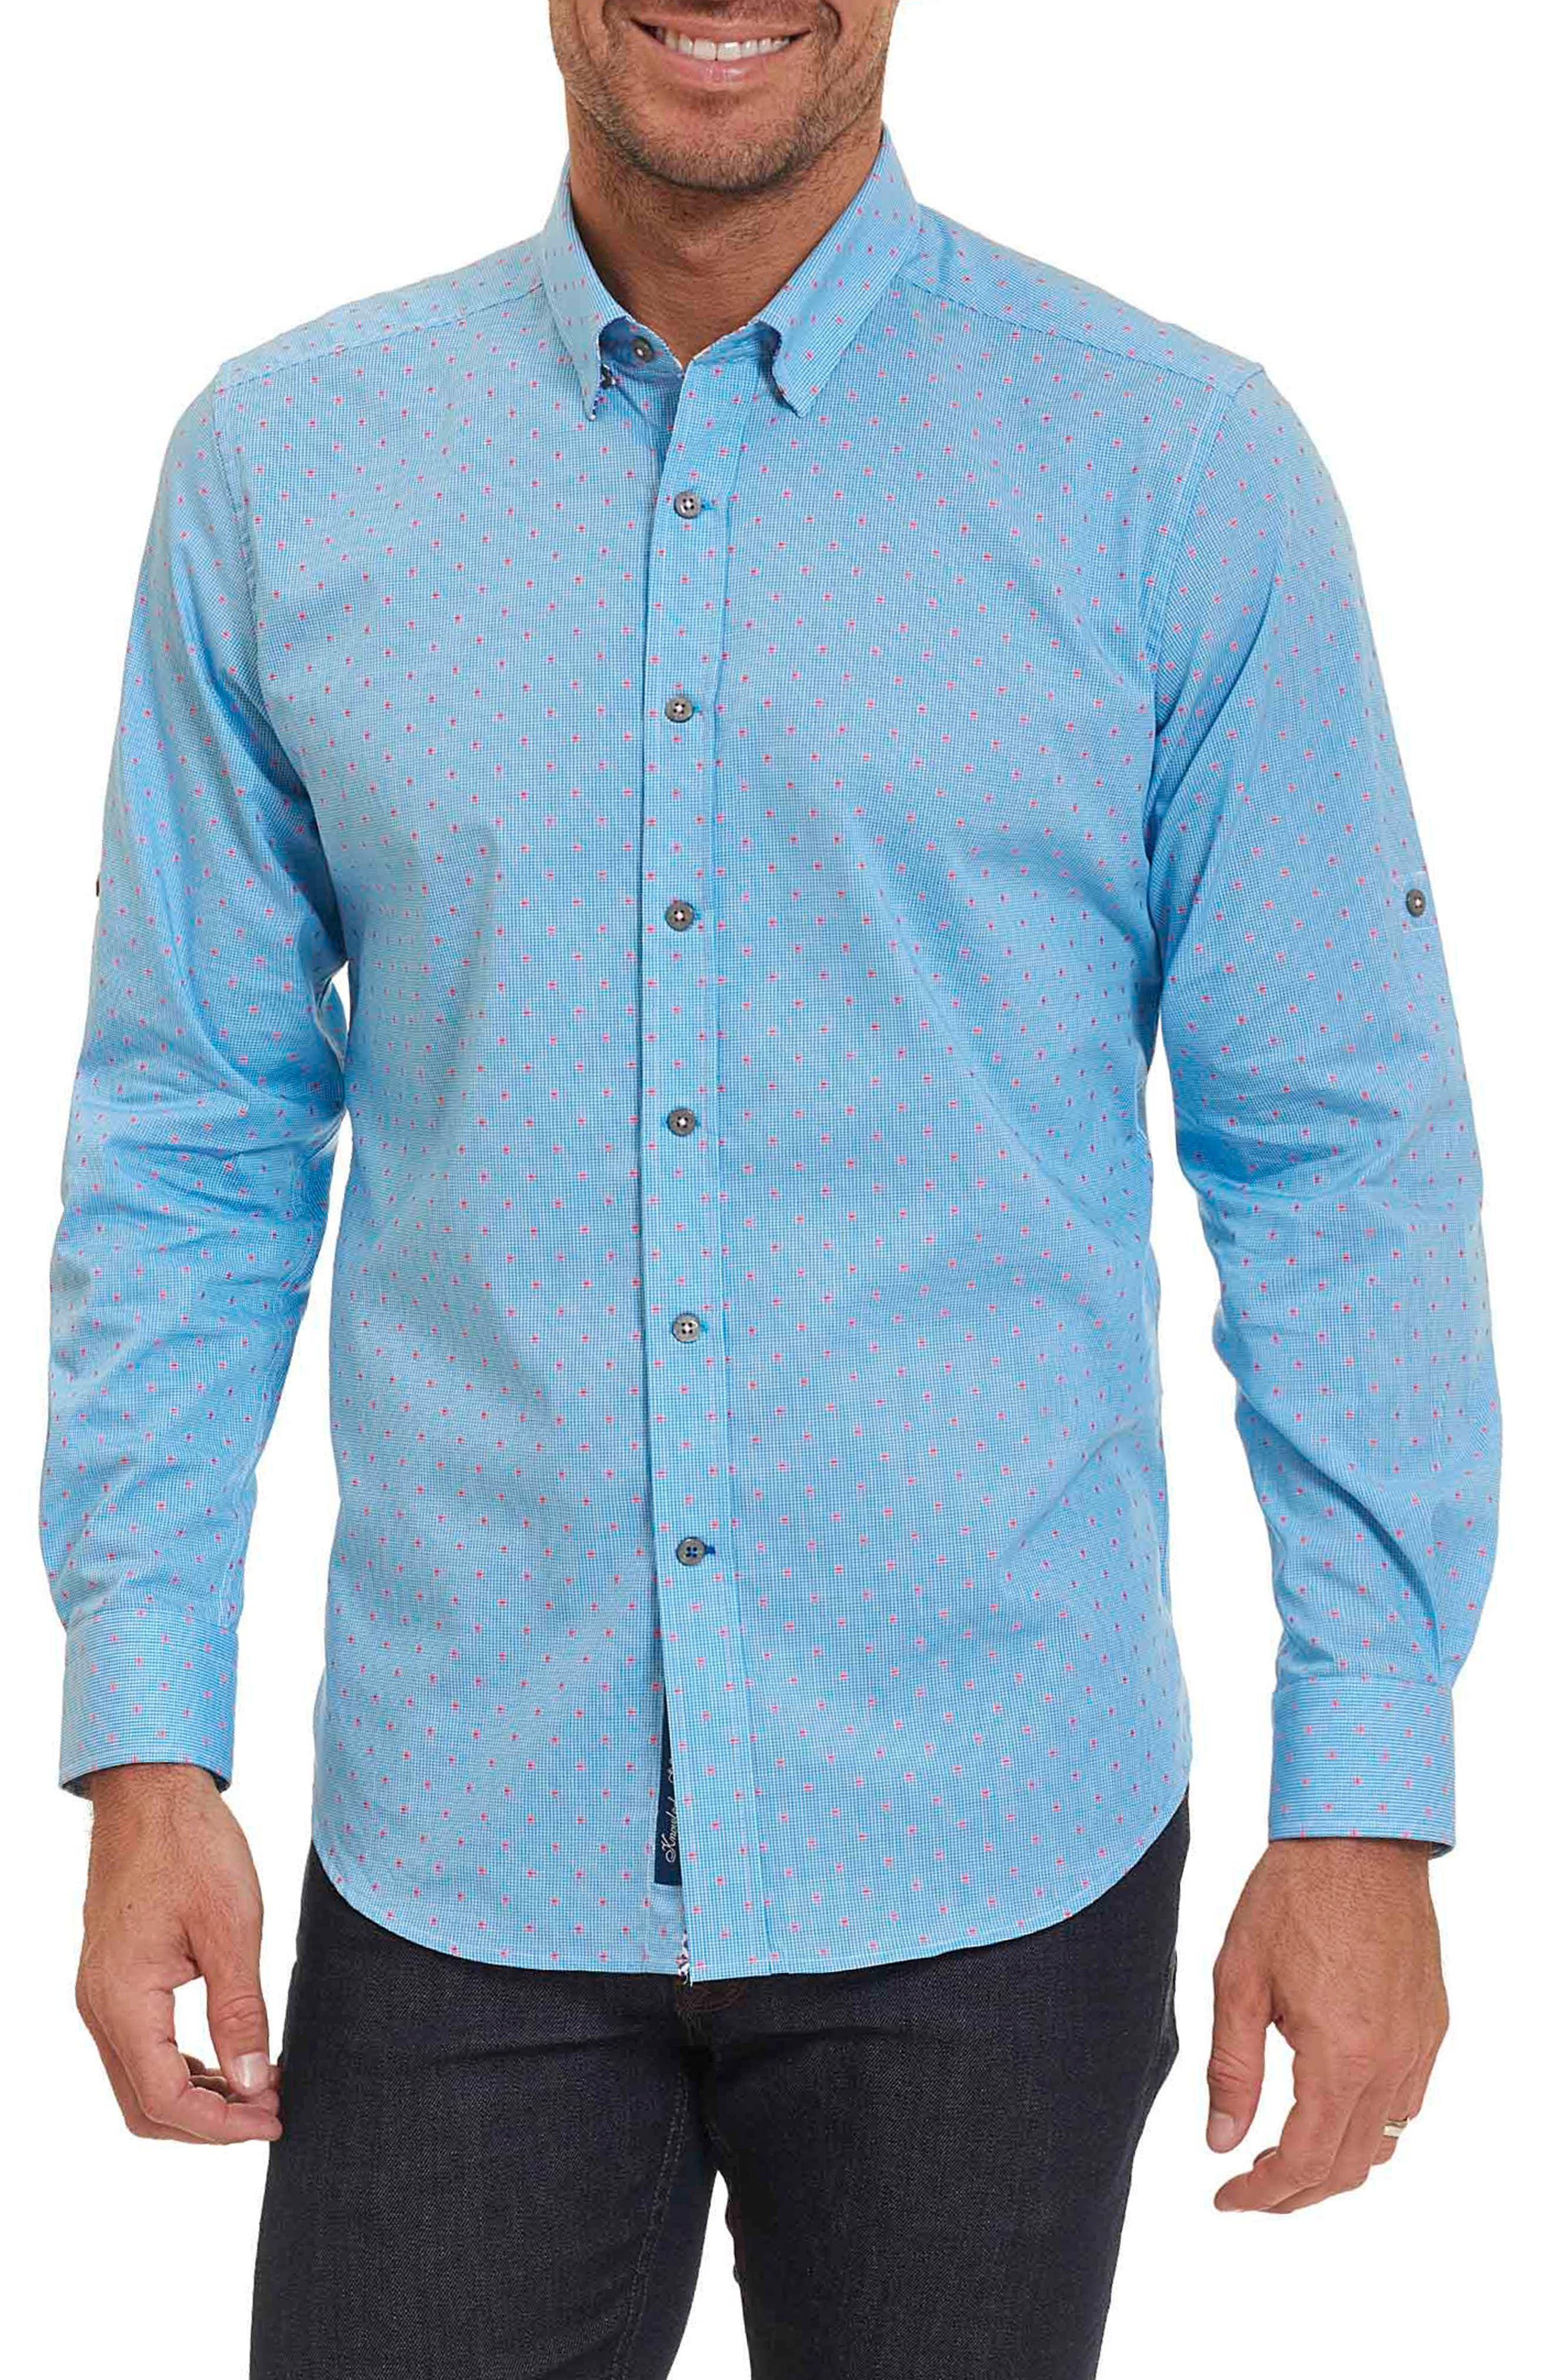 Carlos Tailored Fit Sport Shirt,                         Main,                         color, Teal